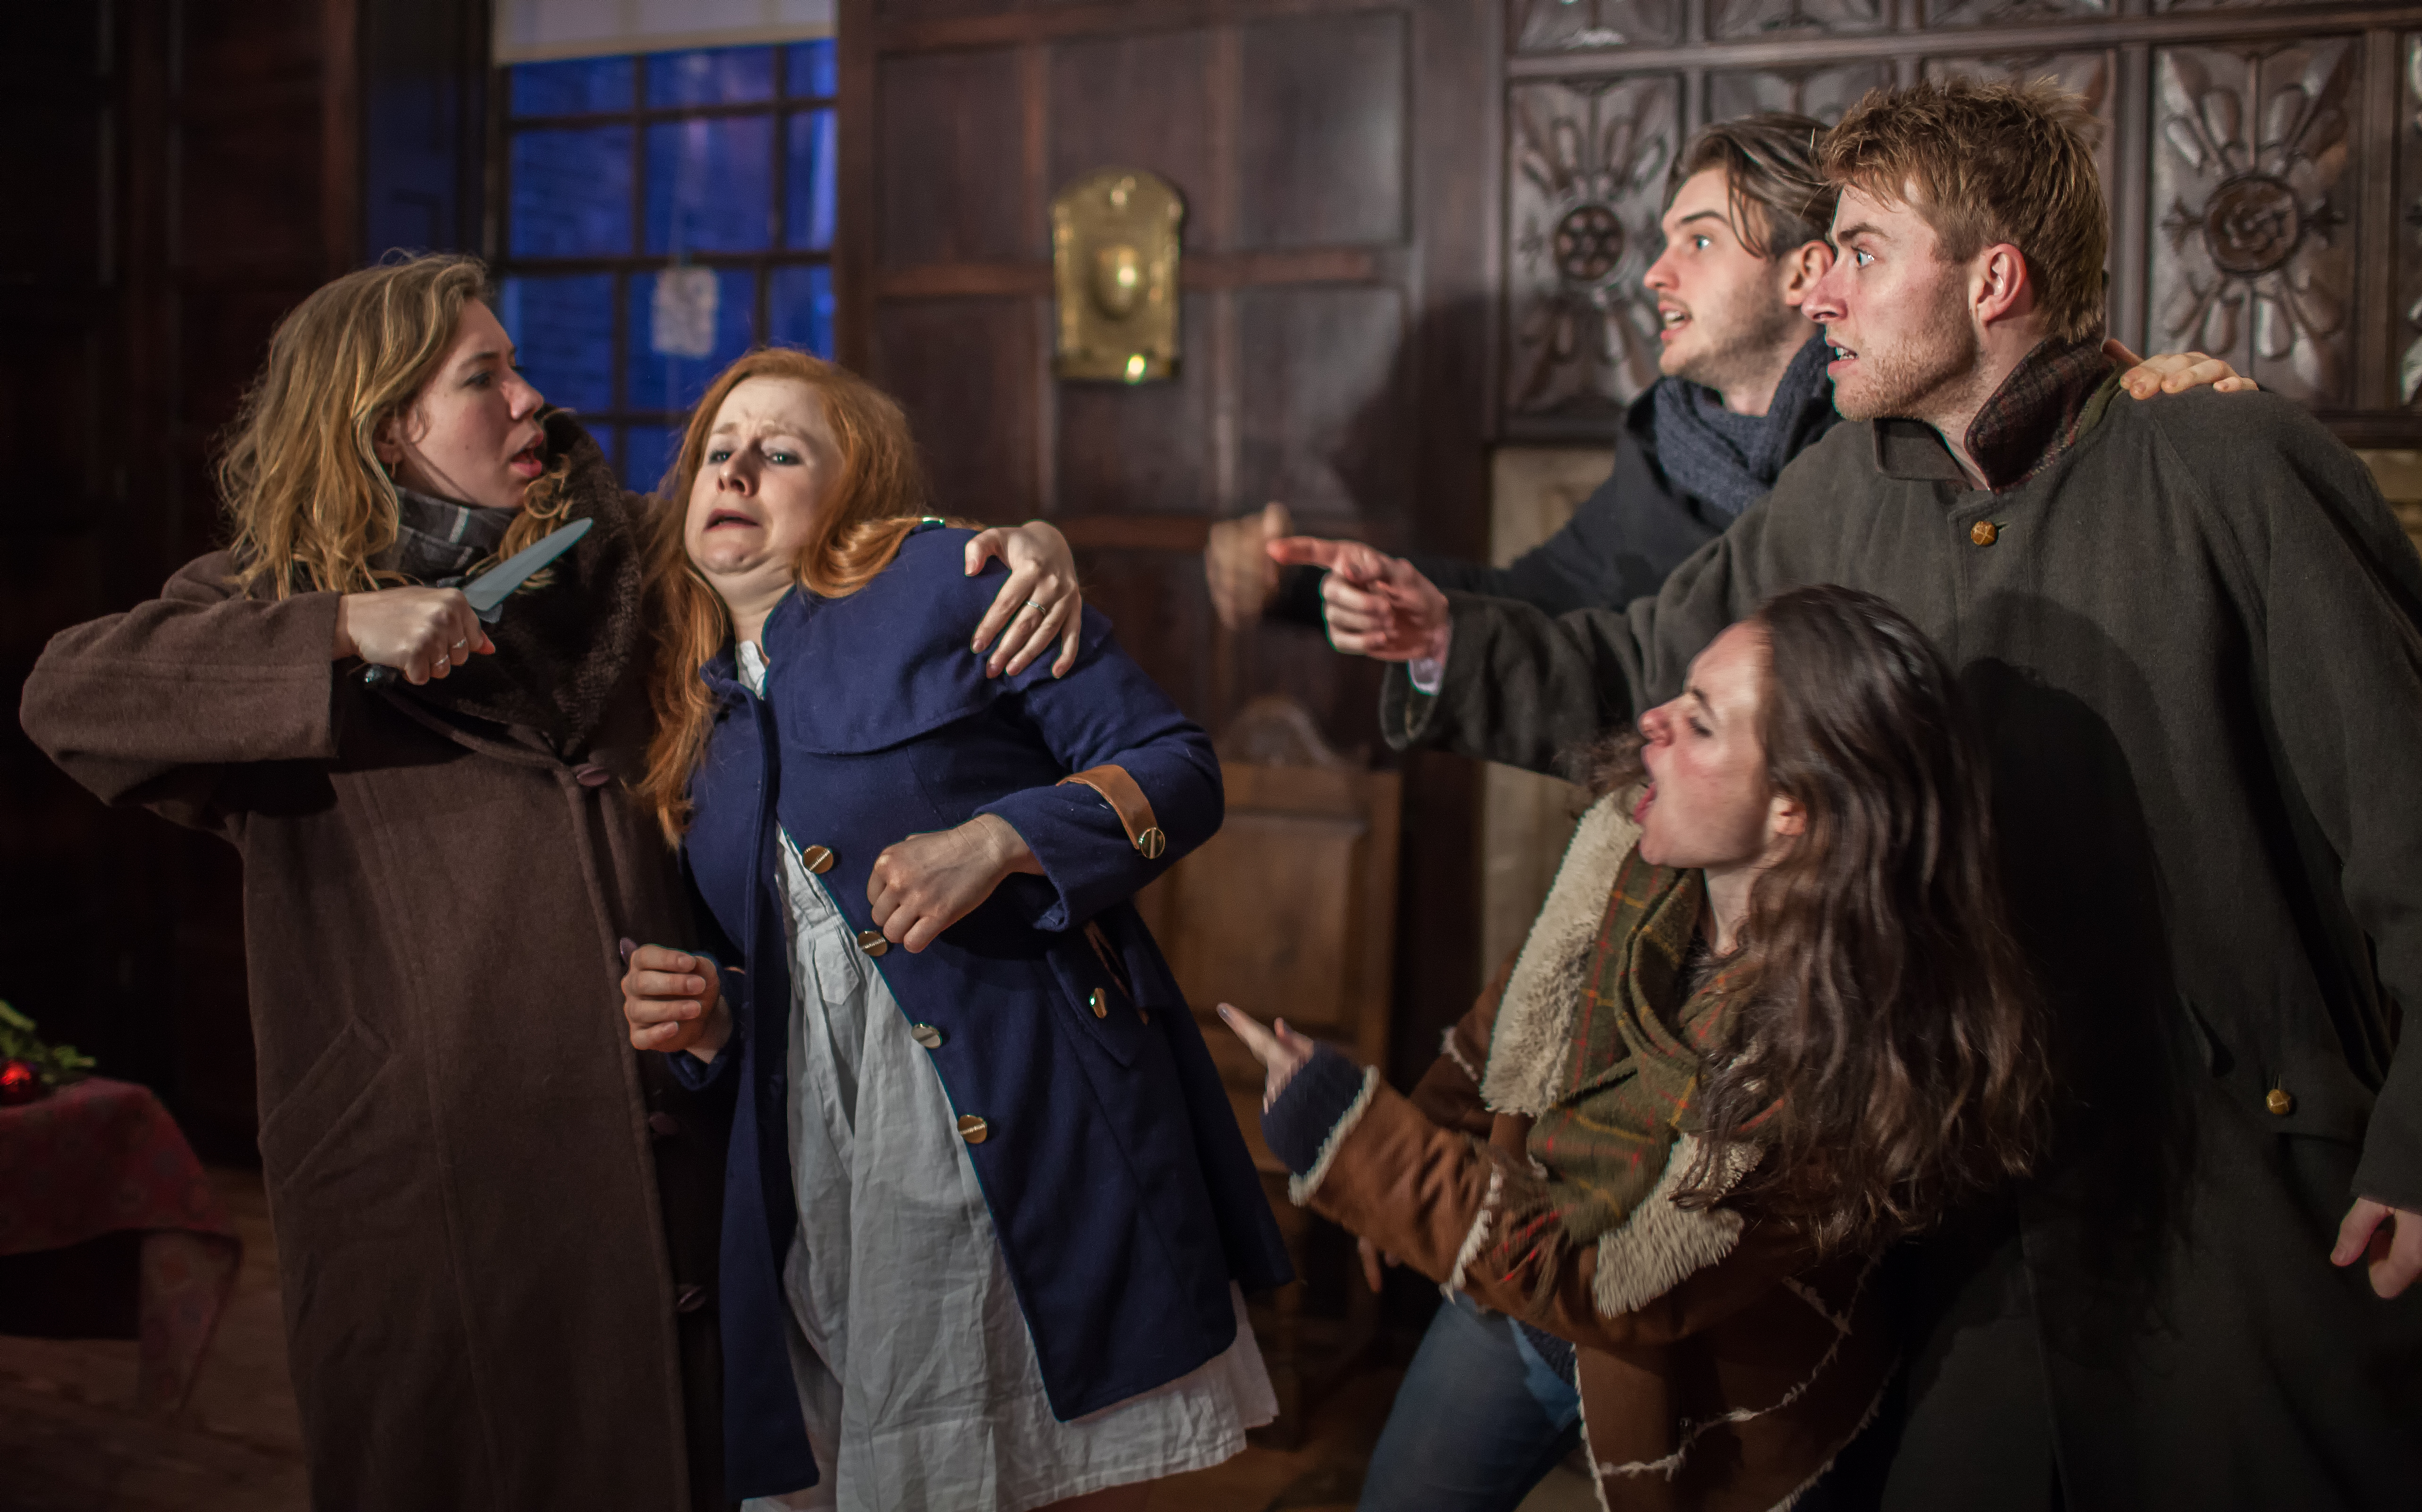 Gerda attacked by robbers